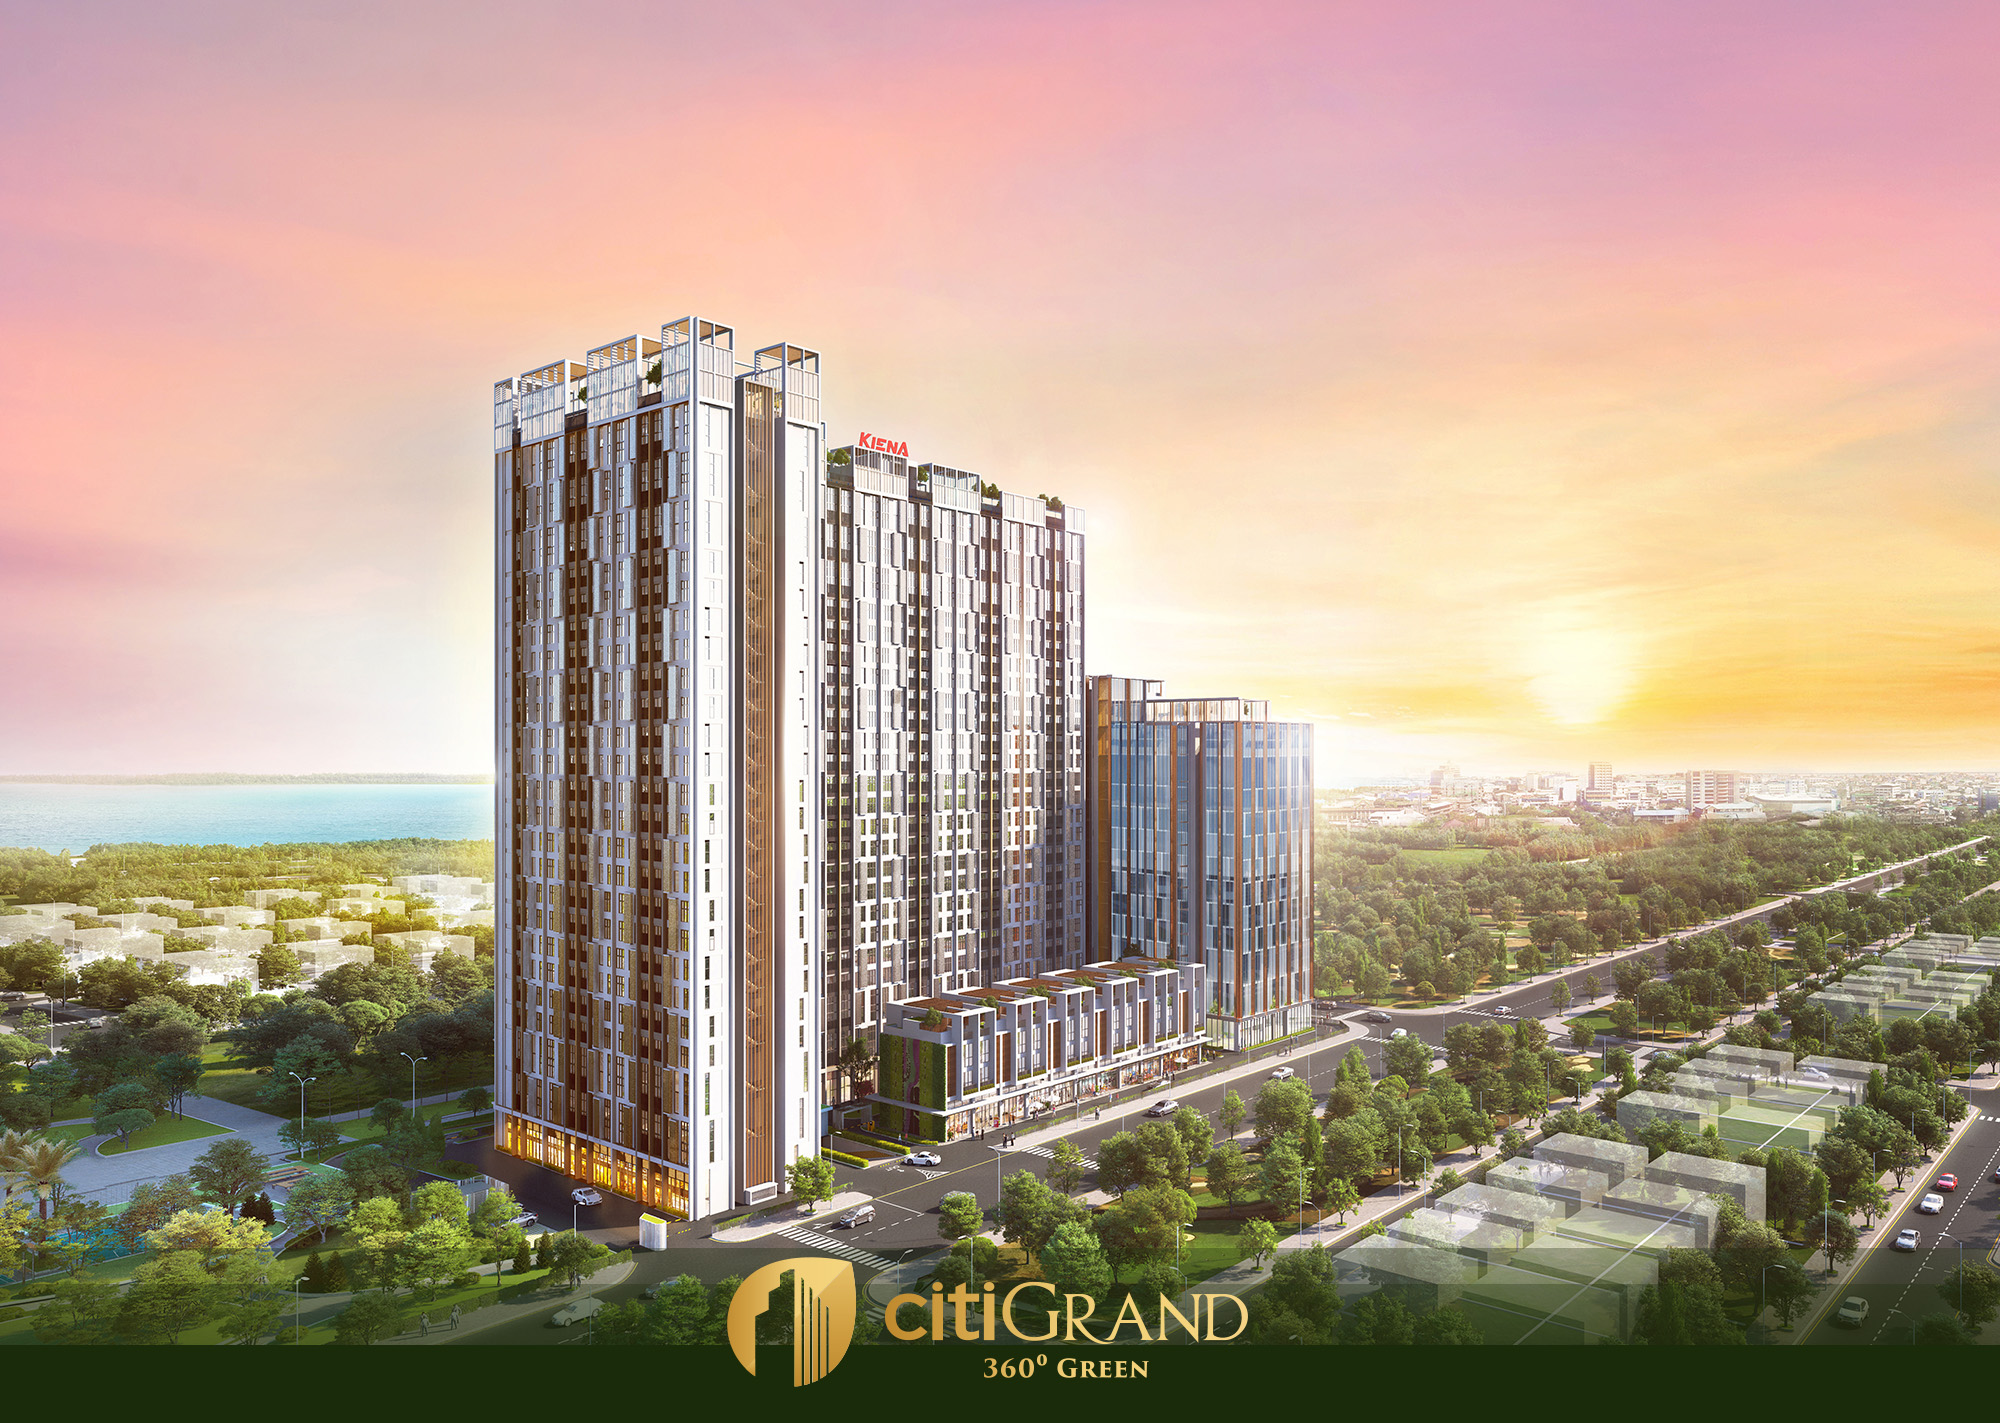 CitiGrand; can ho CitiGrand; du an CitiGrand; Citi Grand; can ho Citi Grand; du an Citi Grand